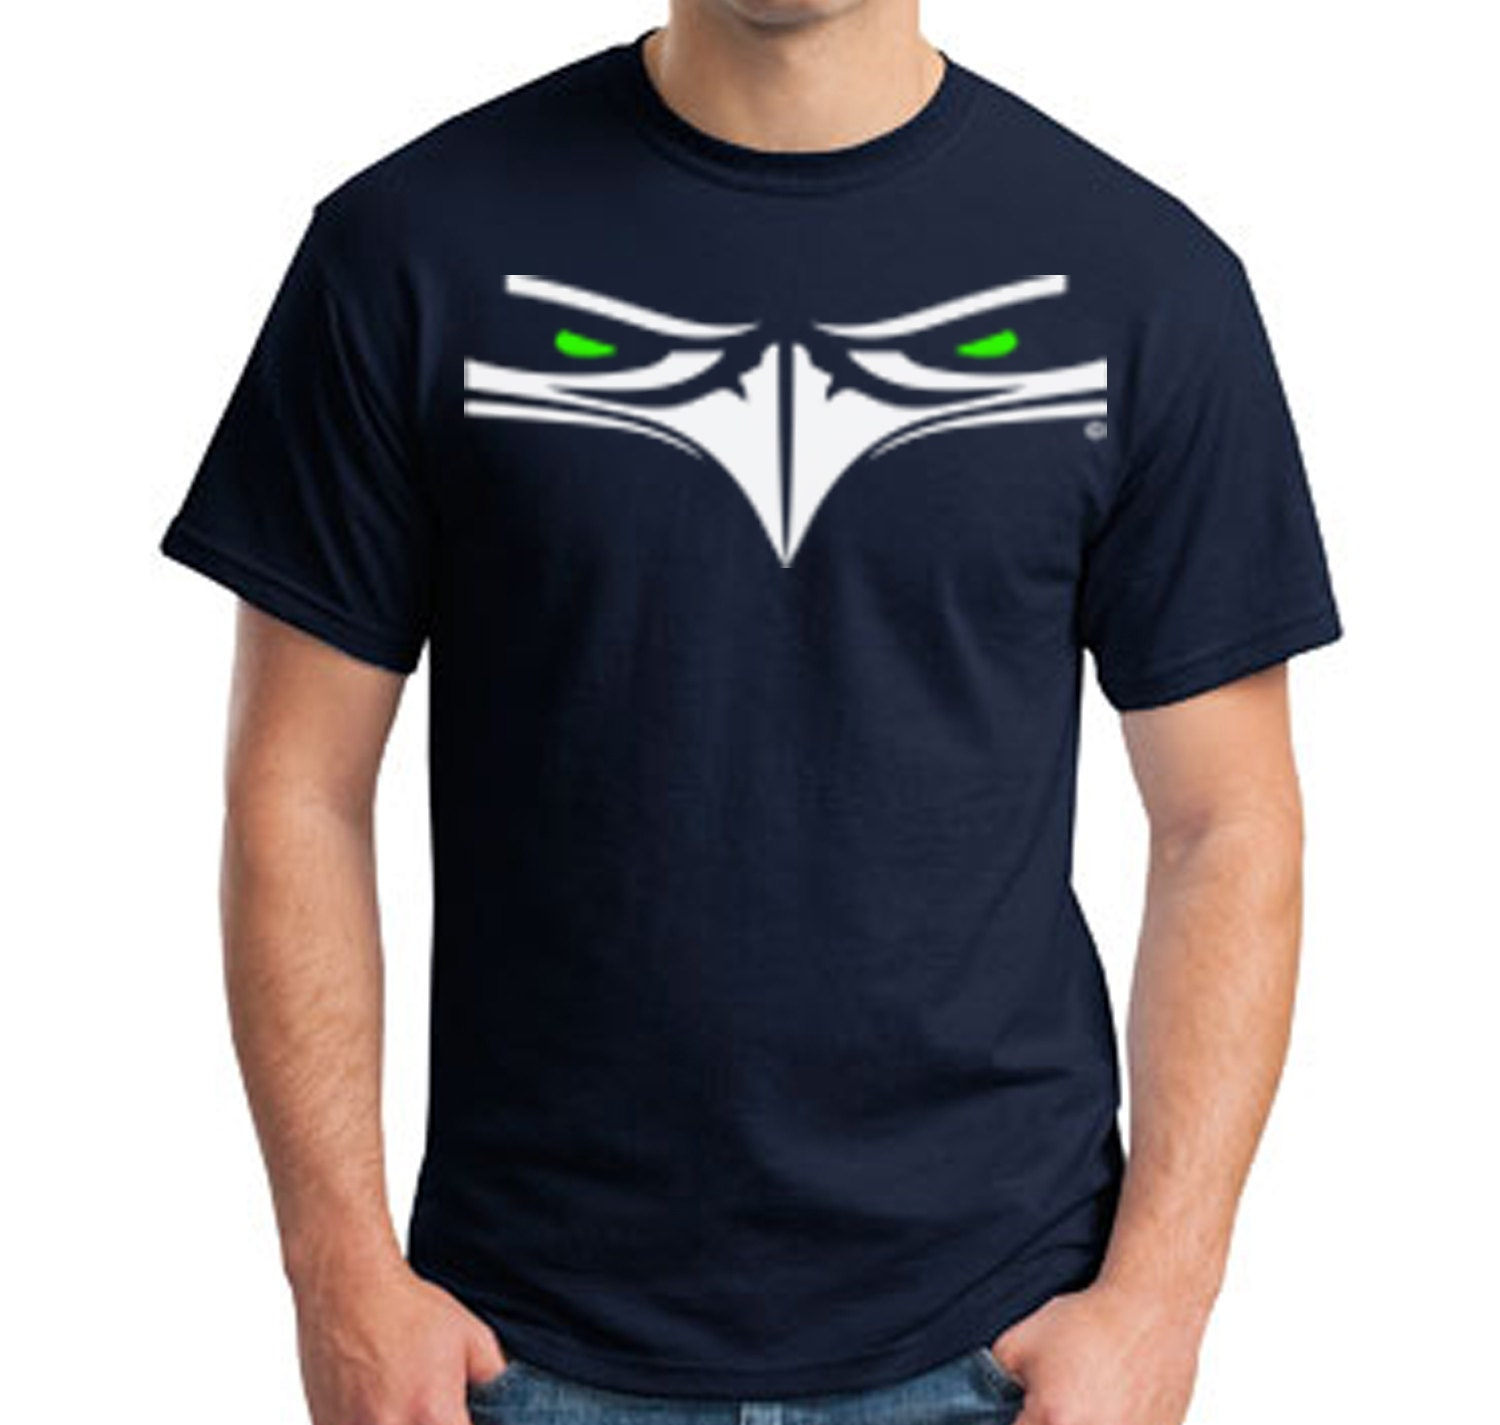 Top seller seattle seahawks t shirt adult sm 5xlg for Seahawks t shirt womens walmart